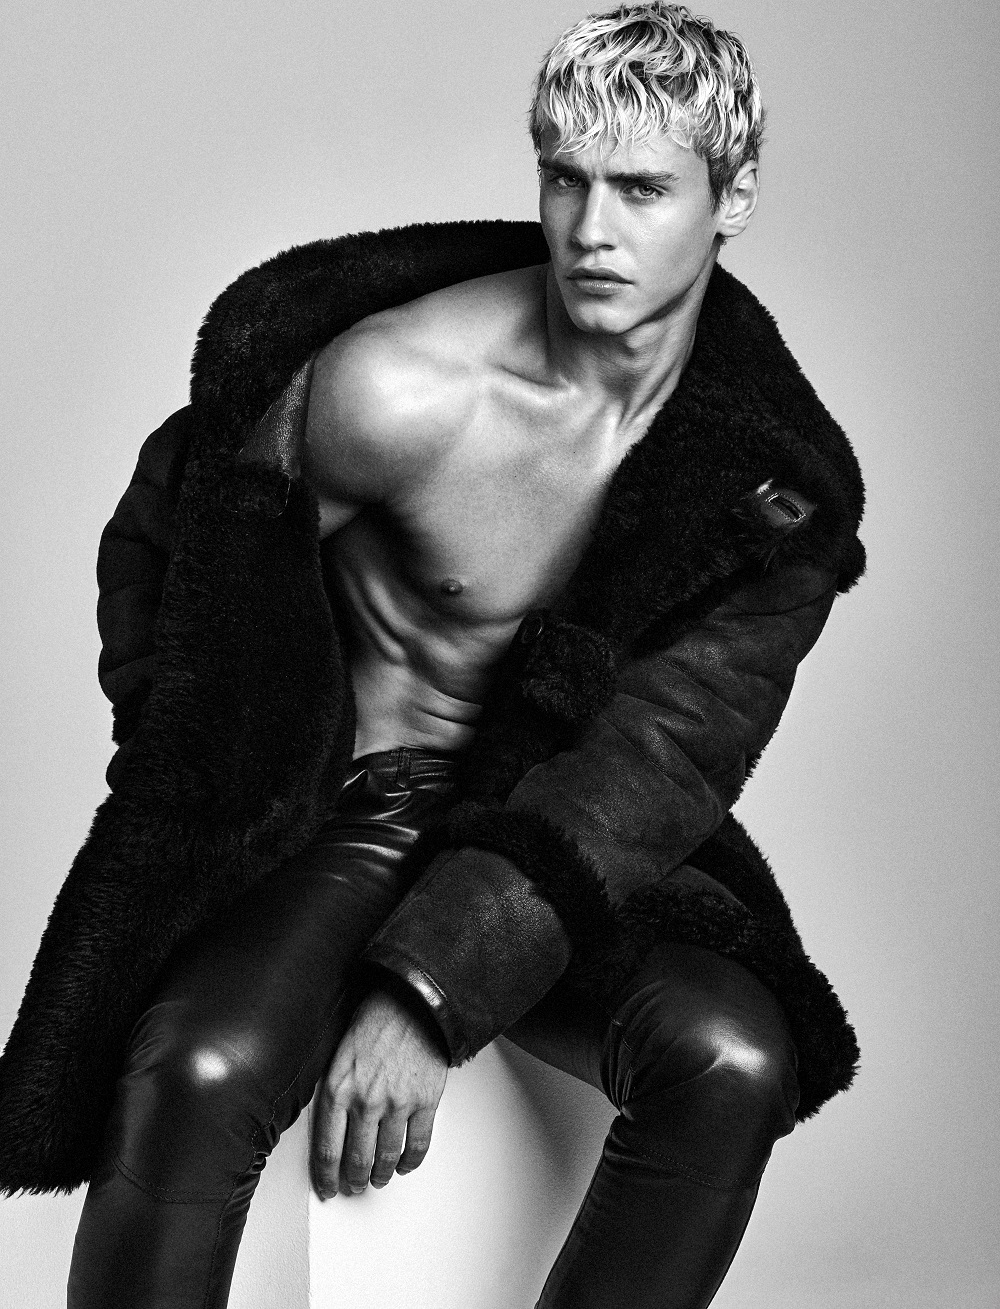 Intertwined: Oliver Stummvoll Models Knits, Shearling + More for Attitude